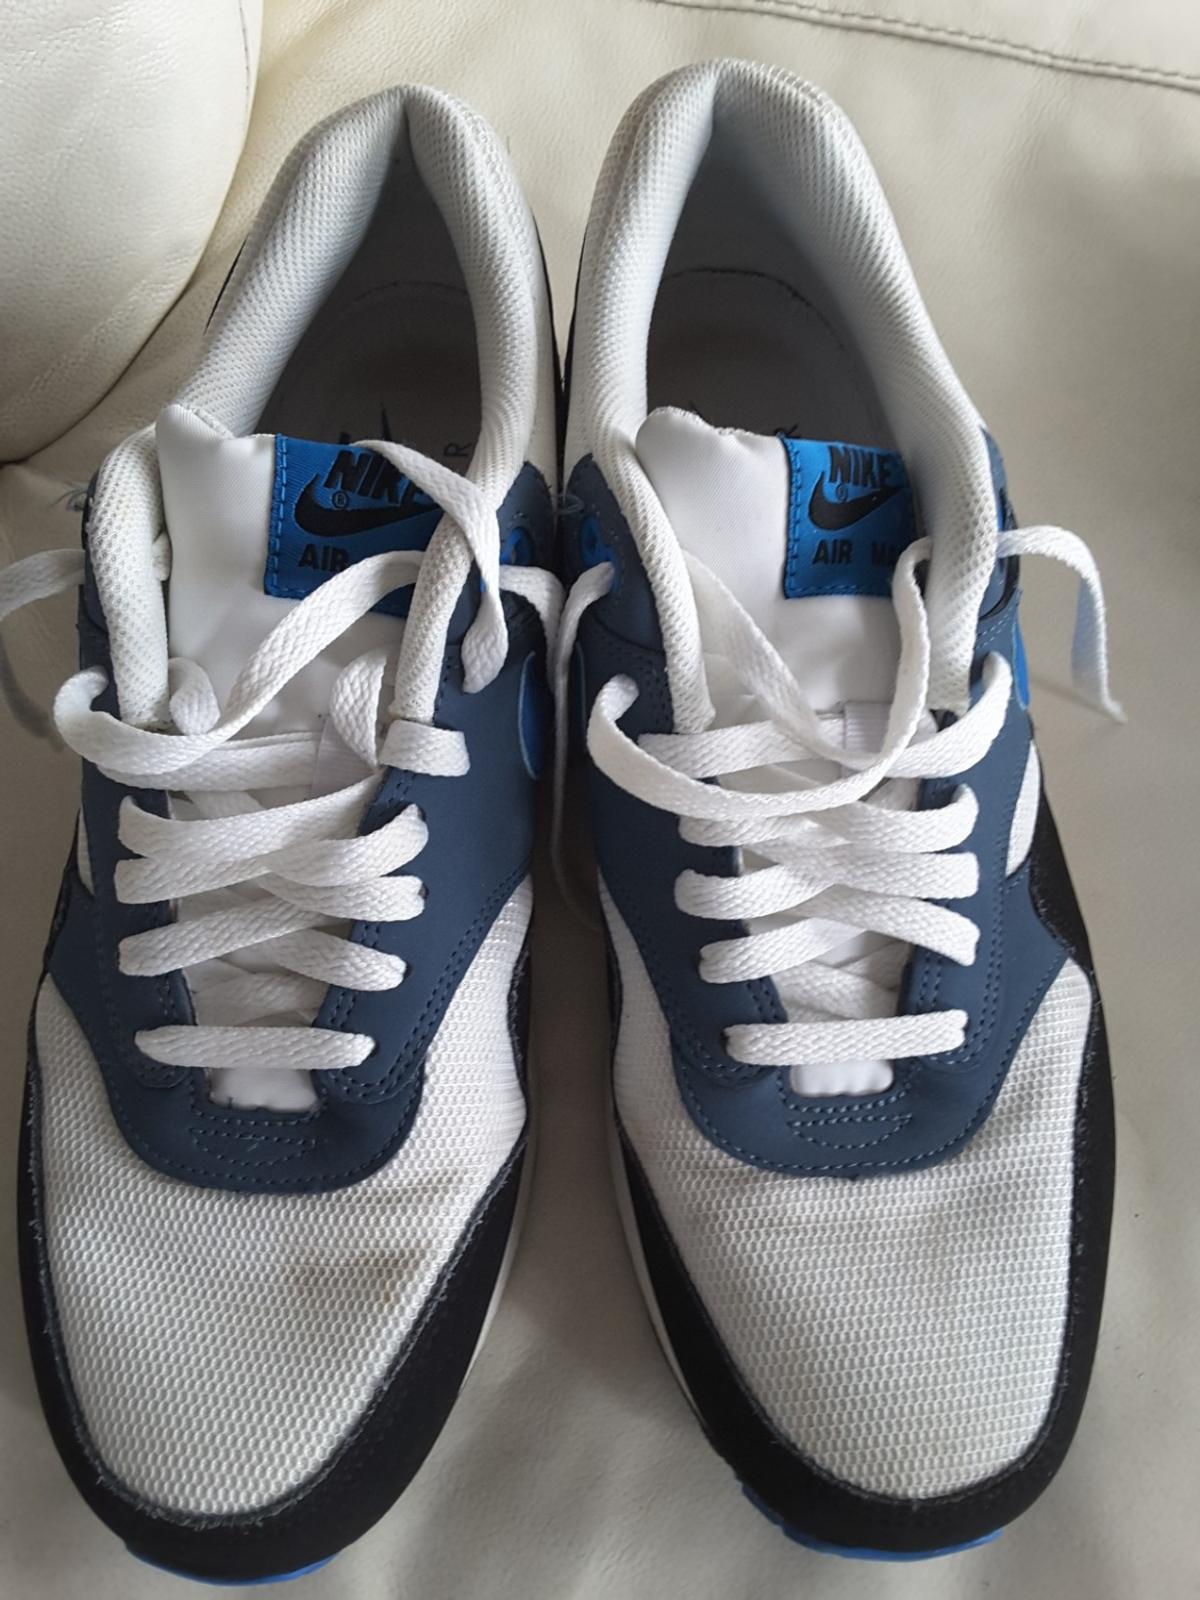 MENS NIKE AIR MAX 1 TRAINERS UK 9 EUR 44 in SW9 London für